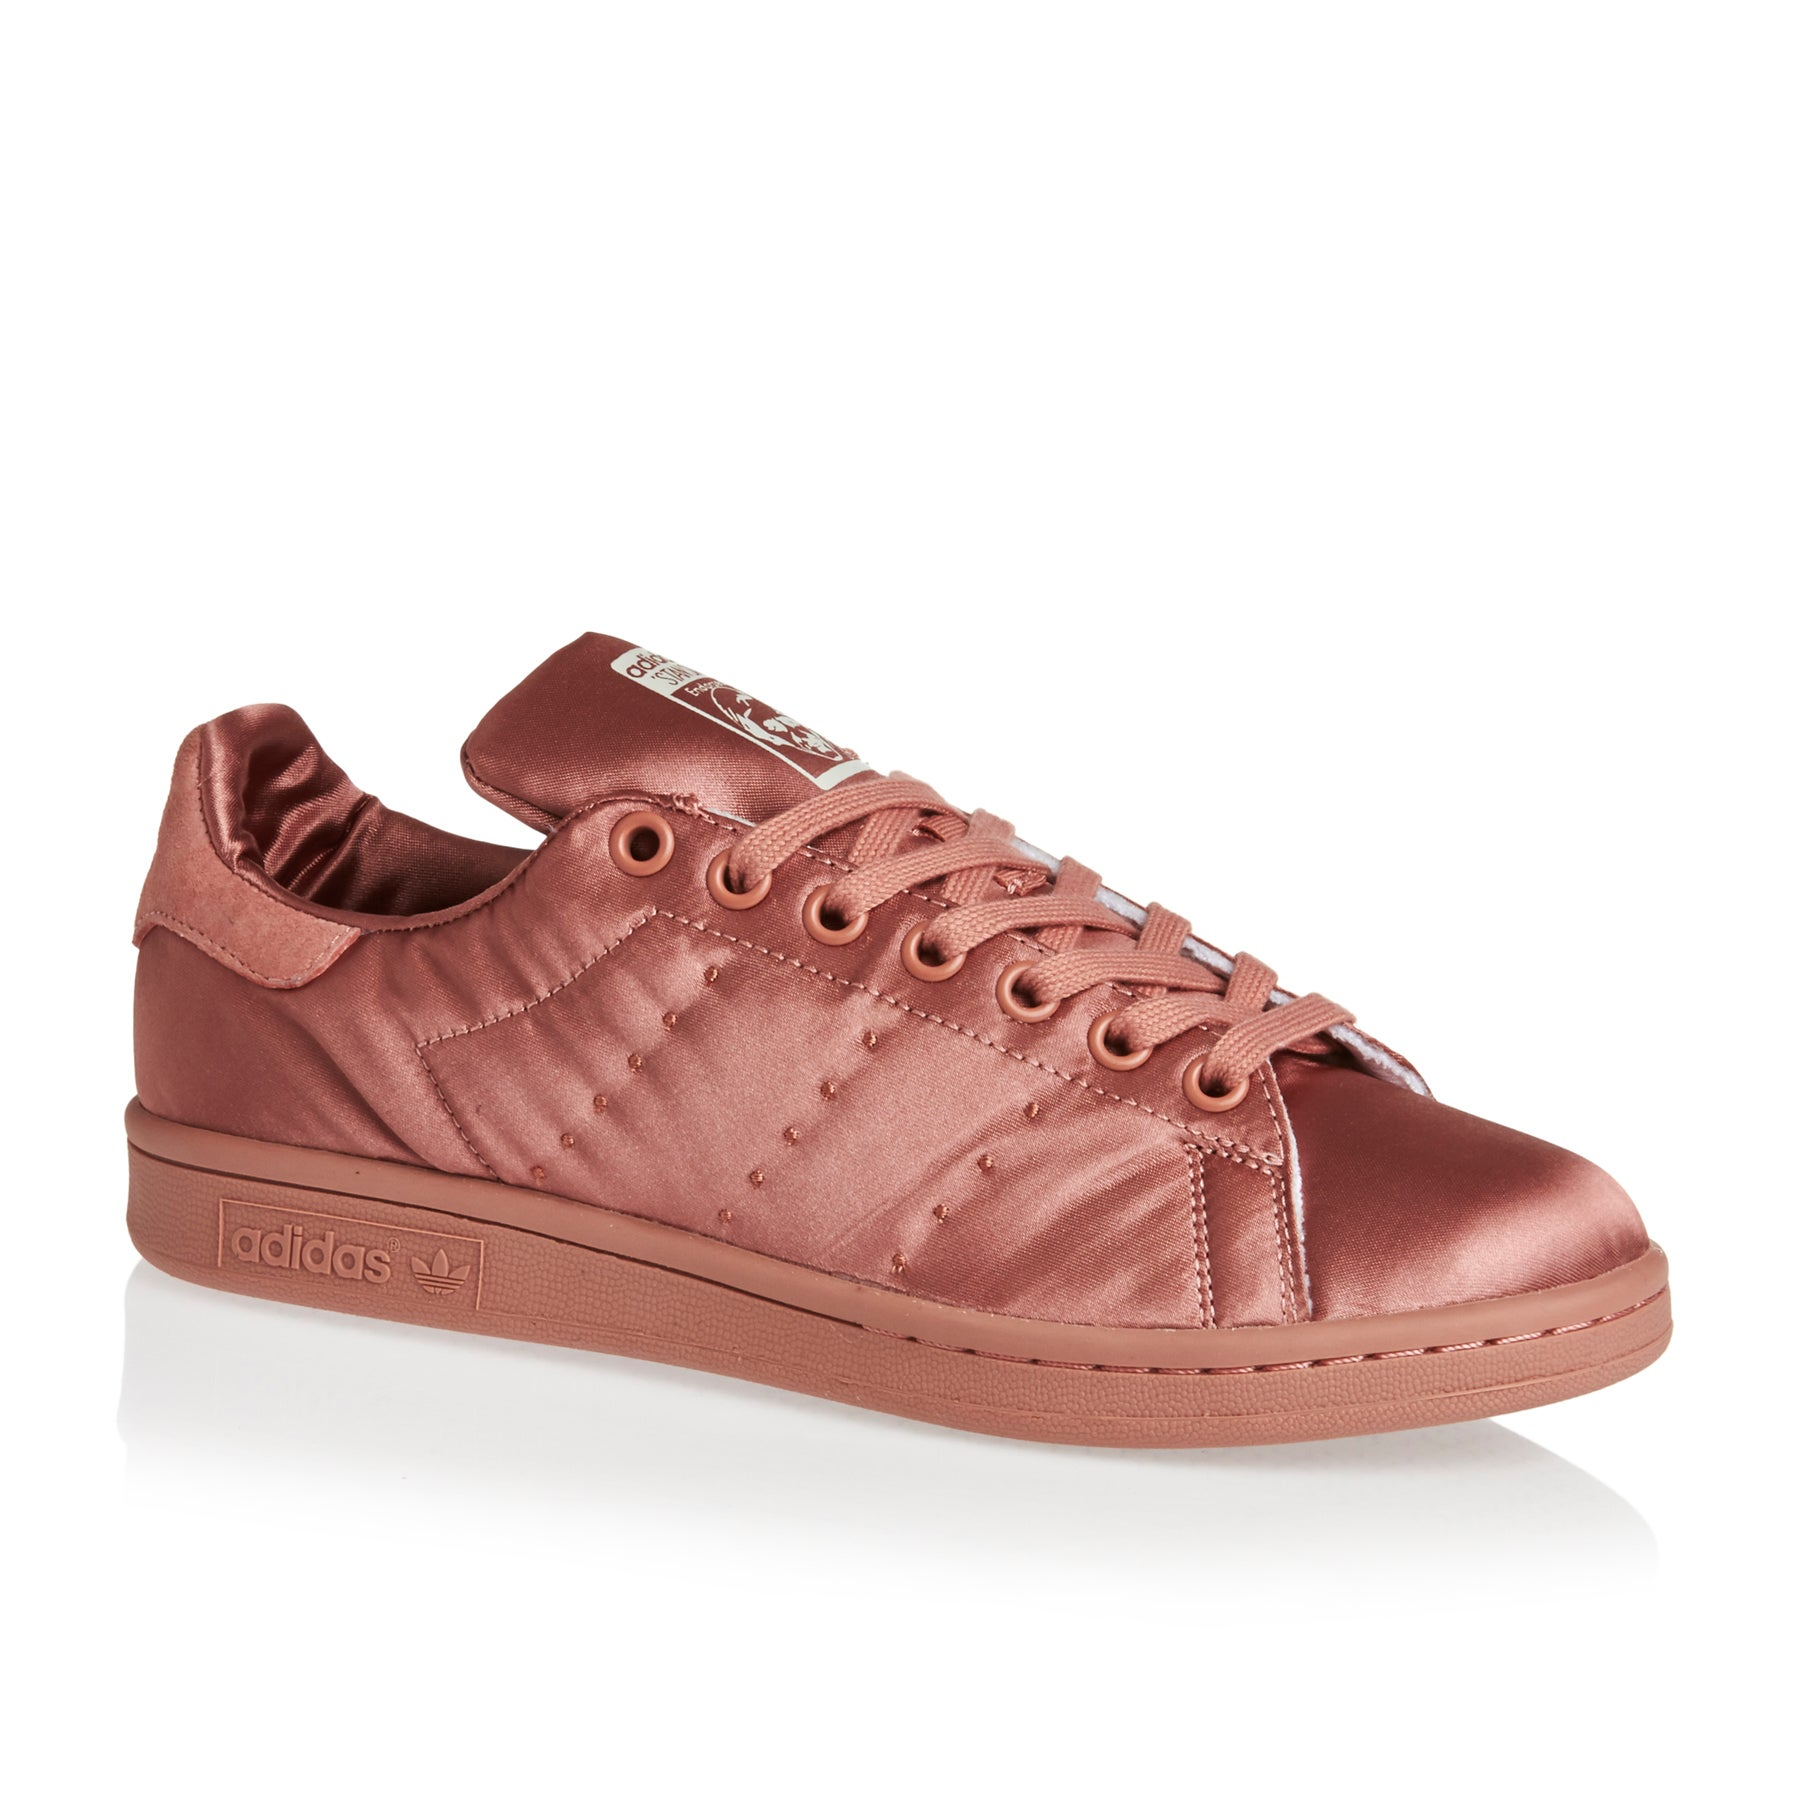 Adidas Originals Stan Smith Womens Shoes - Raw Pink